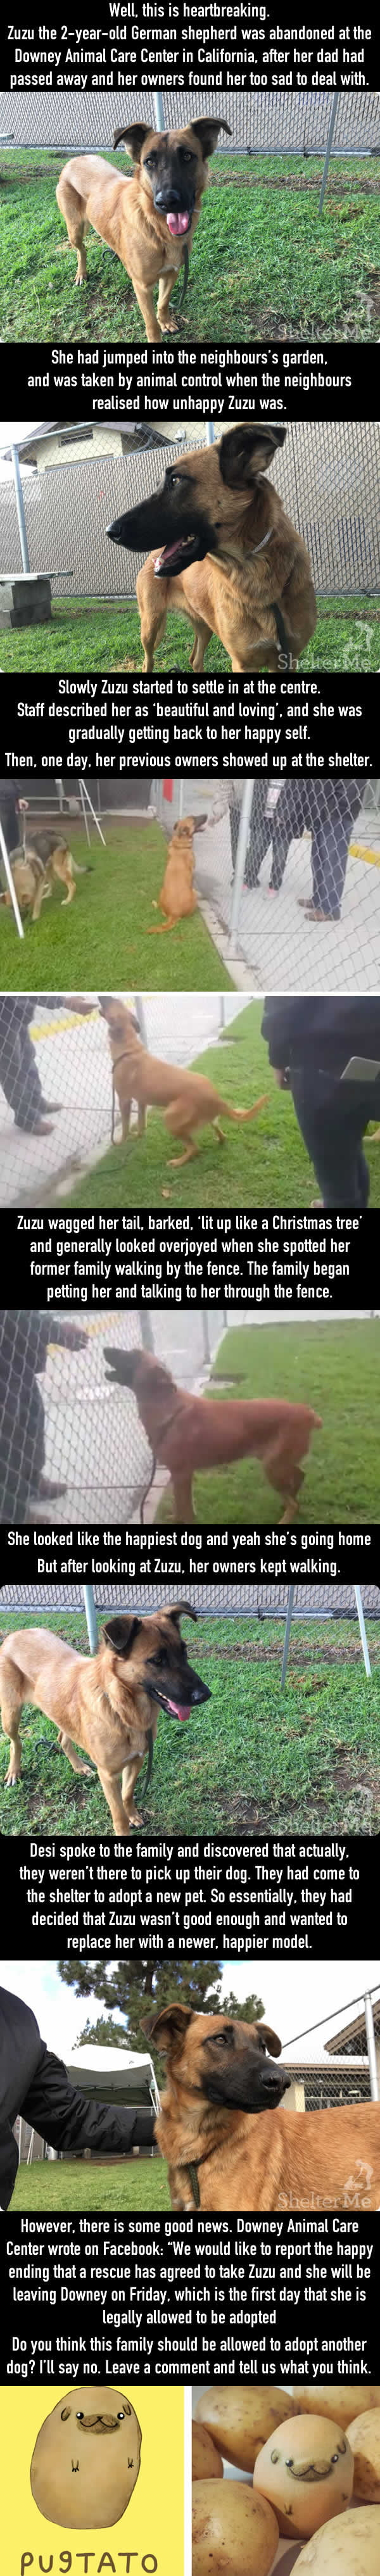 A Dog Who Was Left At A Shelter Later Saw Her Family Come For A New Dog